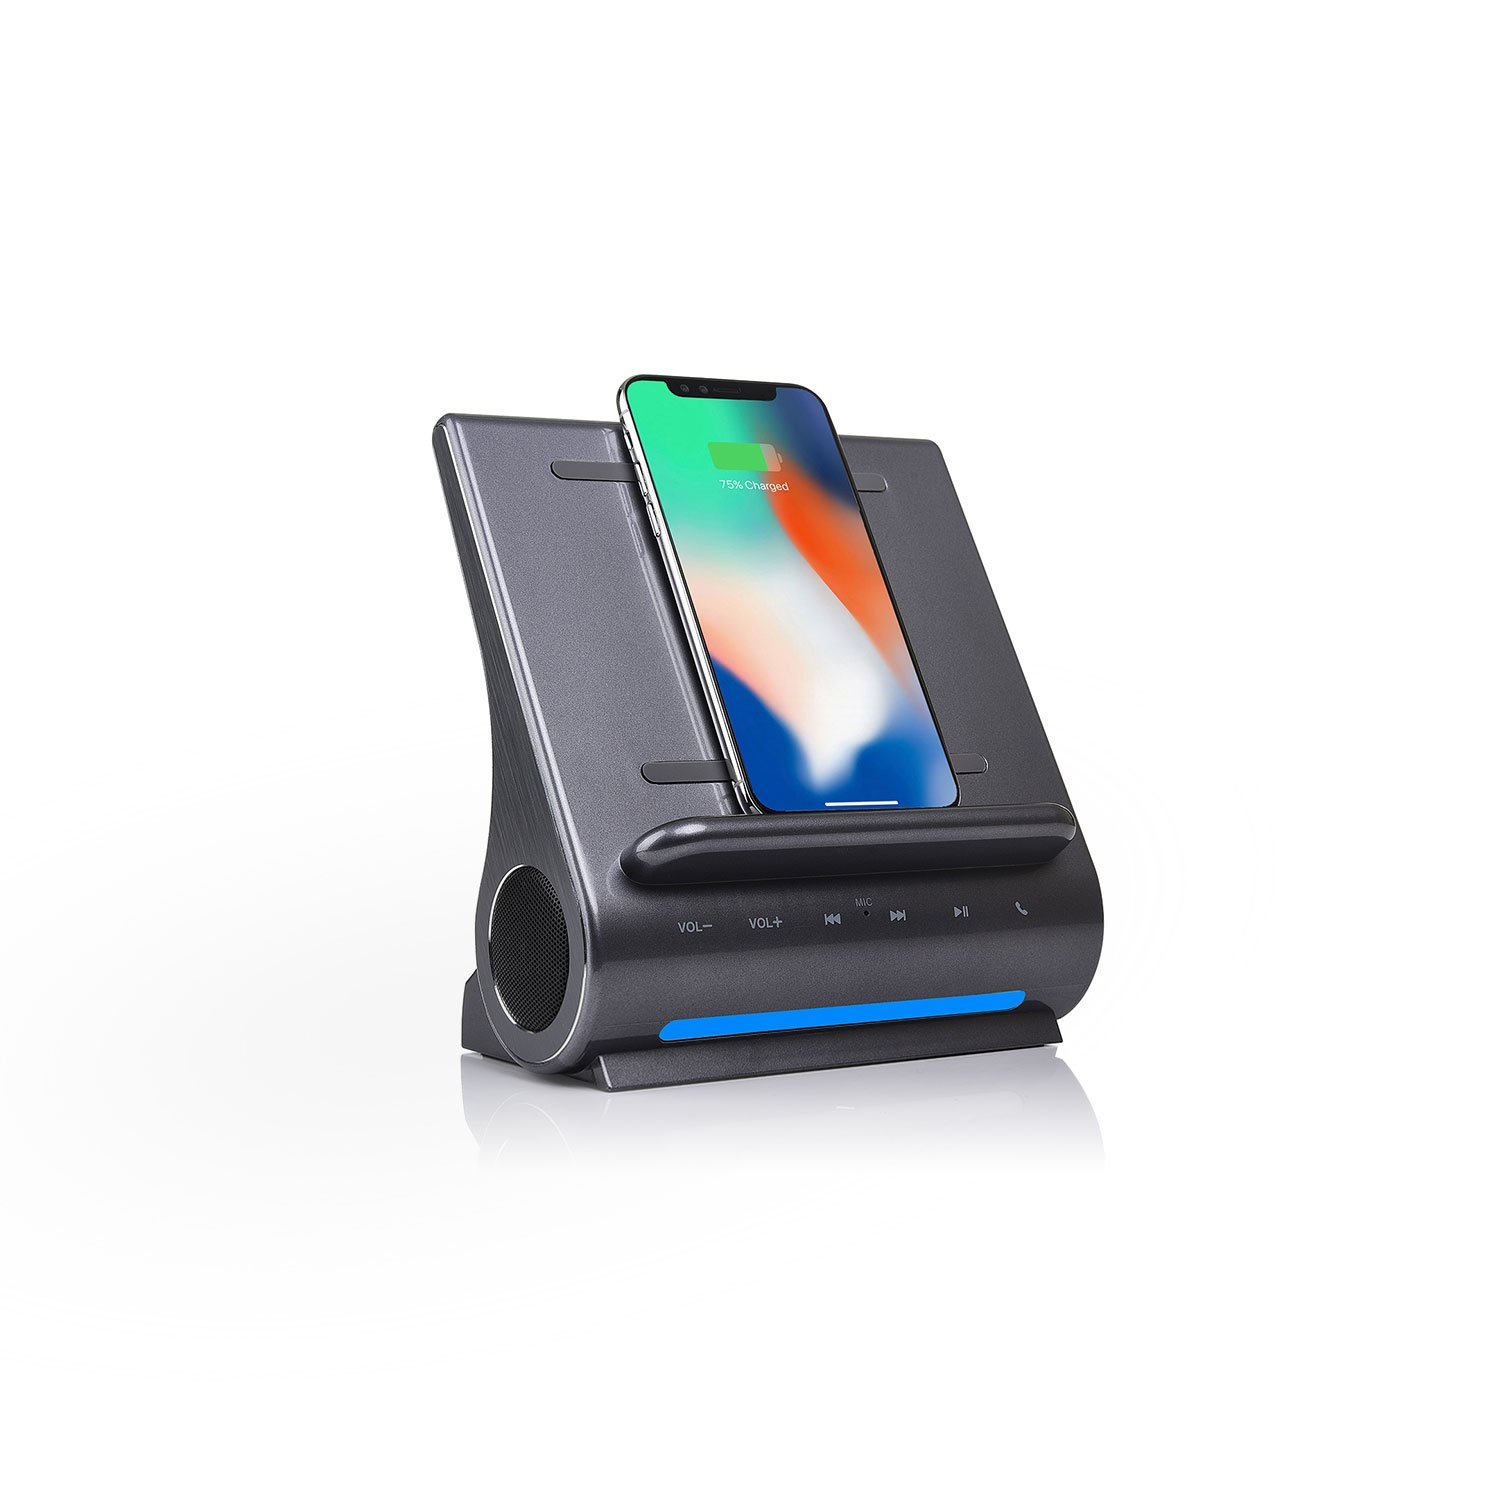 Azpen Dockall D108 Fast Qi Wireless Charger, Upgrade Bluetooth Speakers, Docking Station with Built in Mic Handsfree Call, 2 USB Ports, Charge Up to 3 Devices for Samsung and iPhone